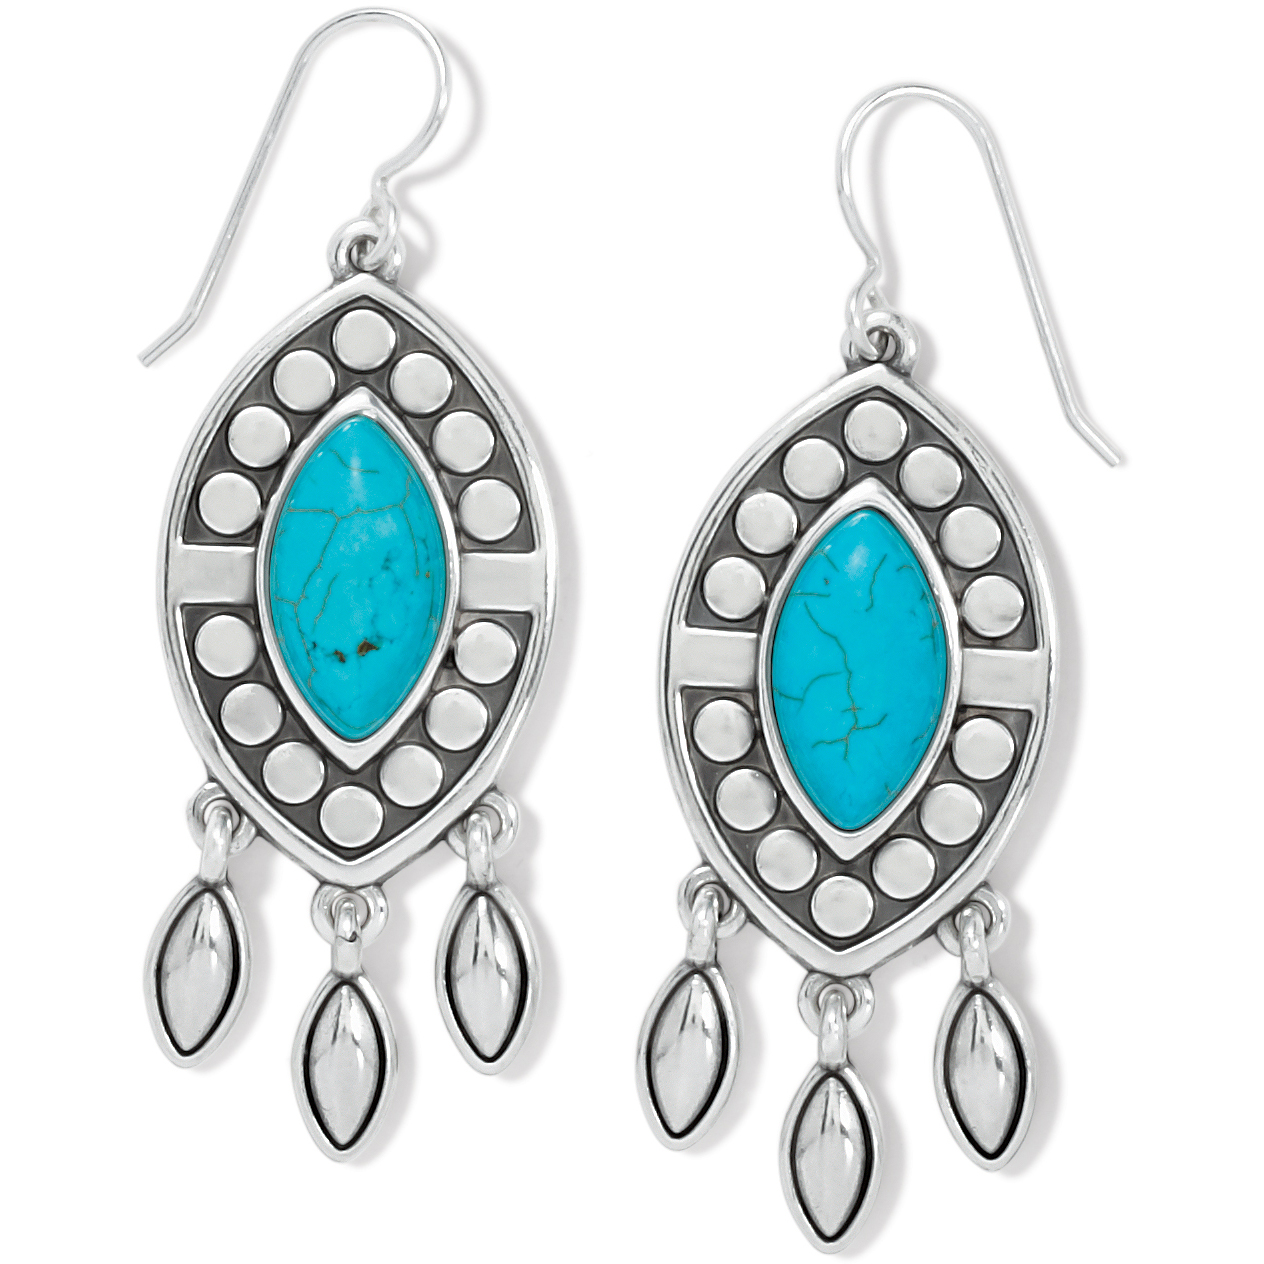 Pebble Dot Dream French Wire Earrings from Brighton